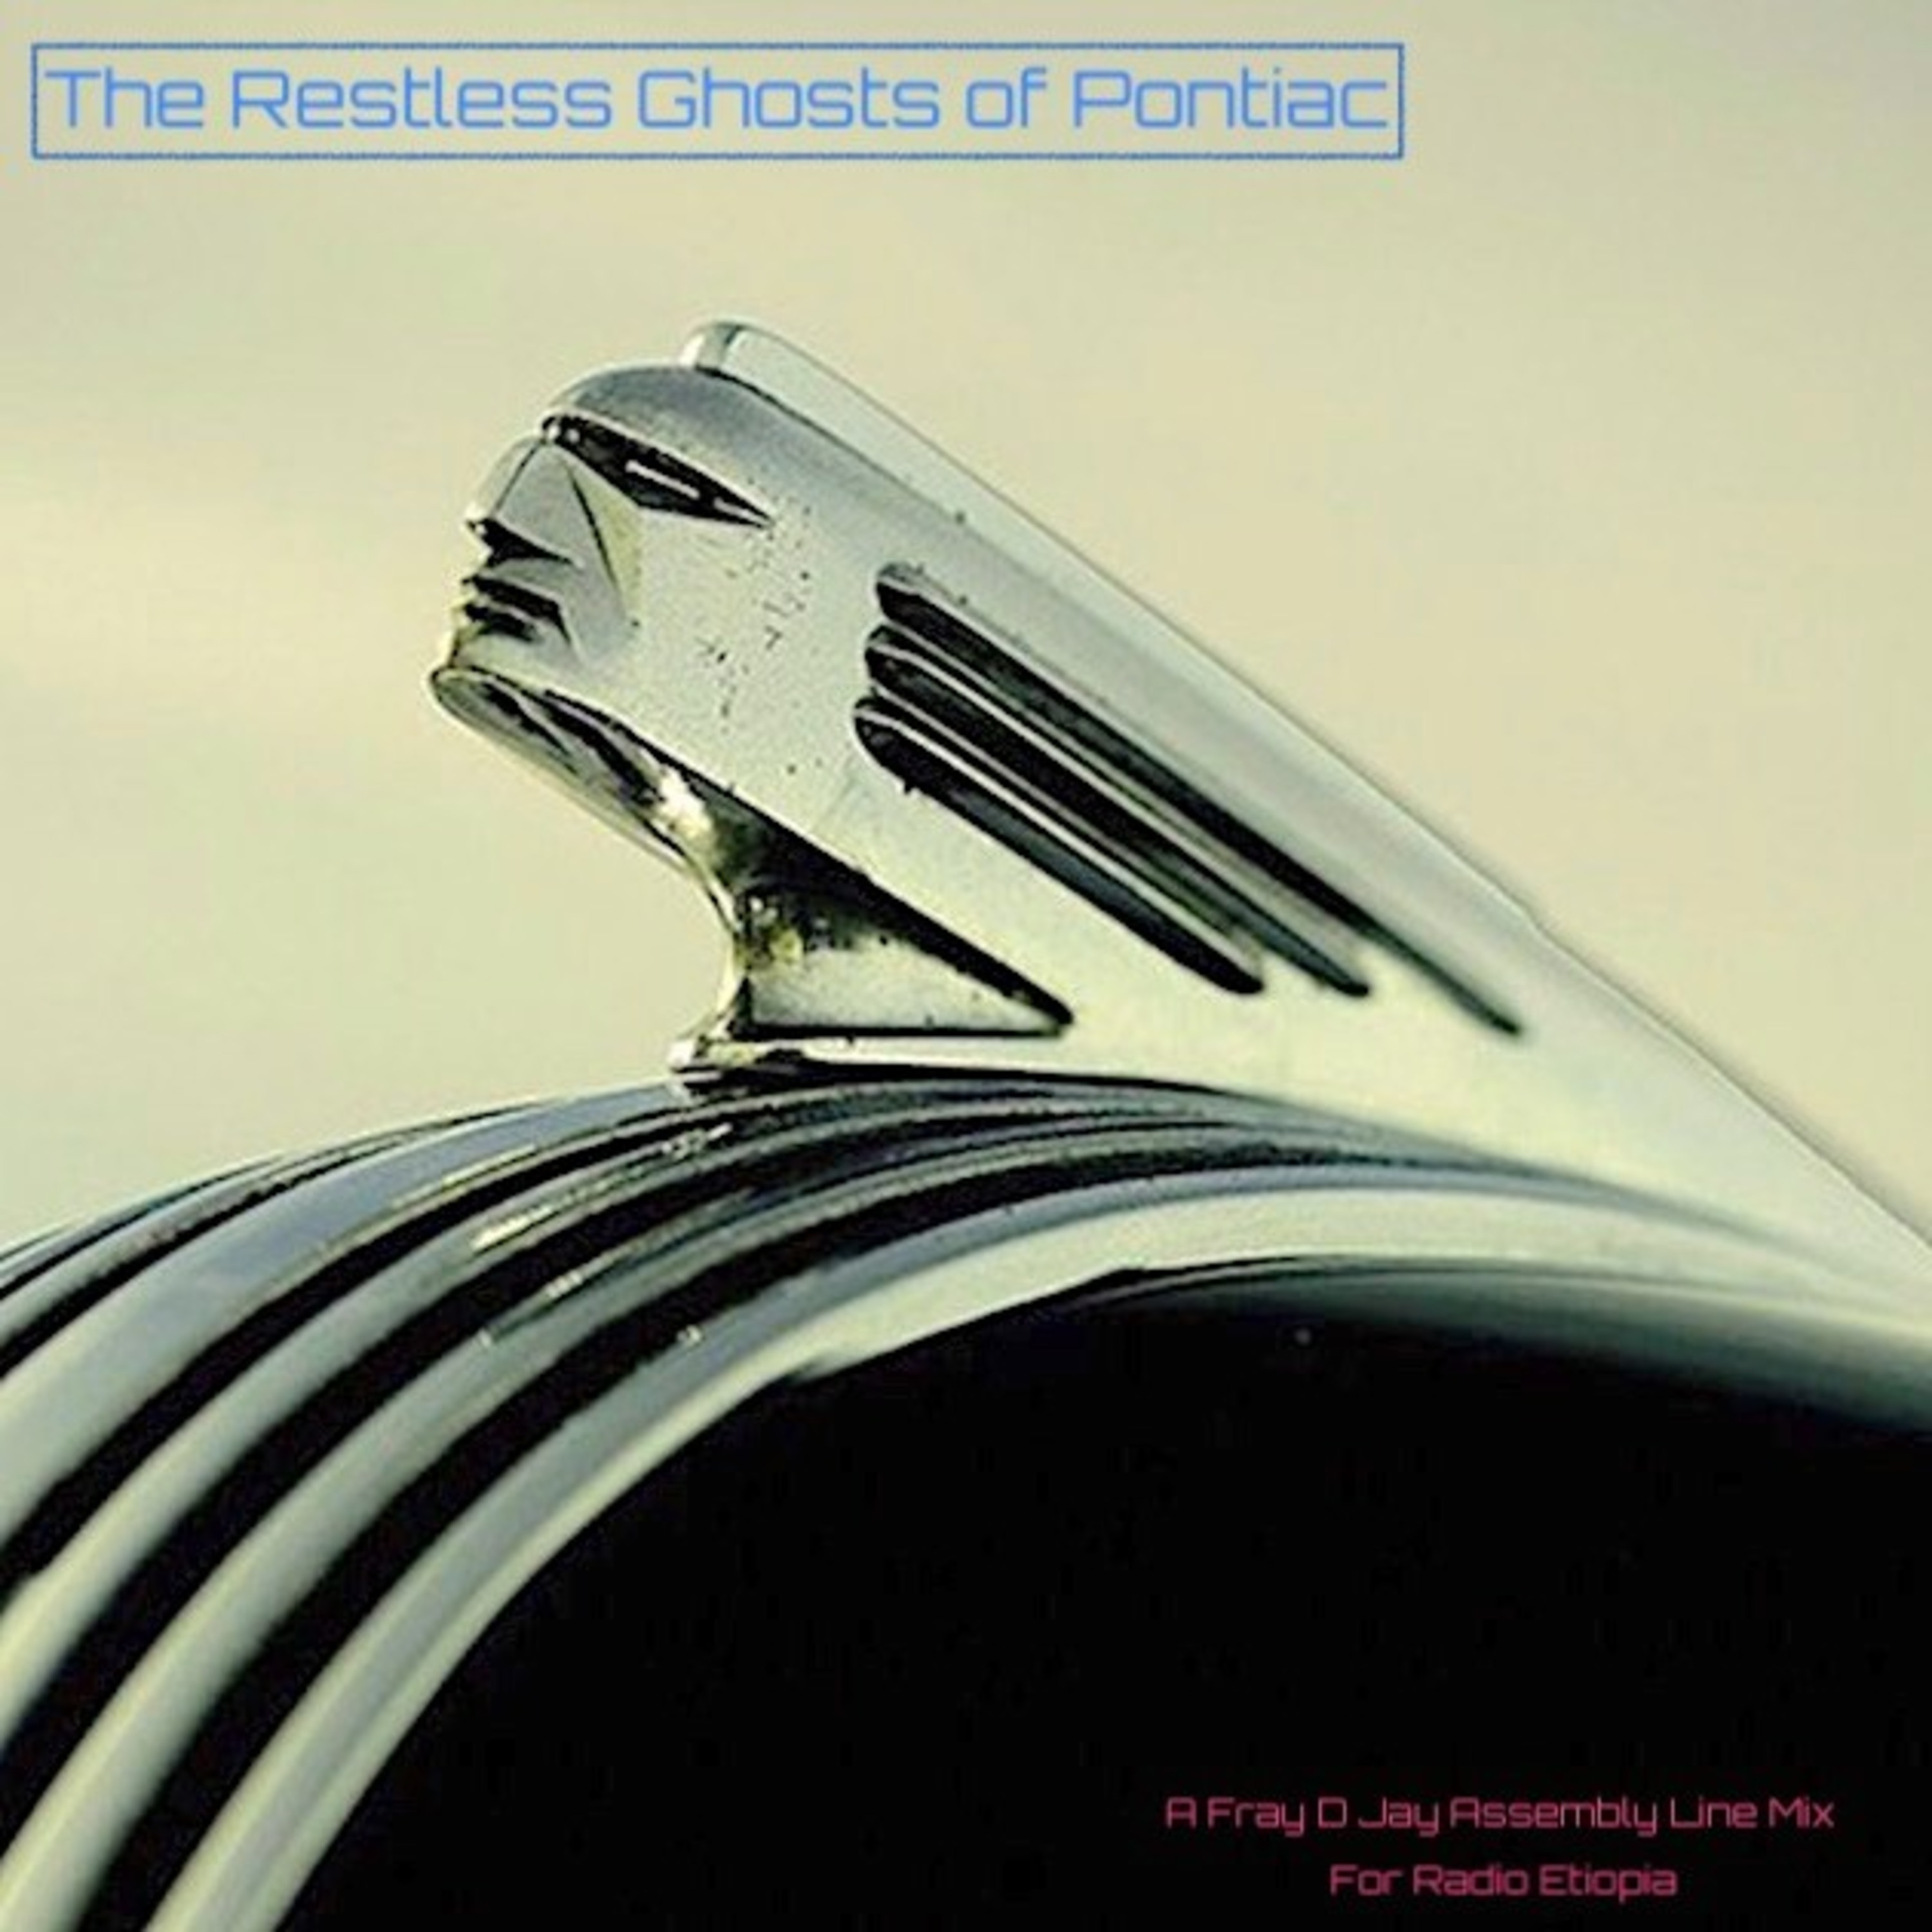 THE RESTLESS GHOSTS OF PONTIAC